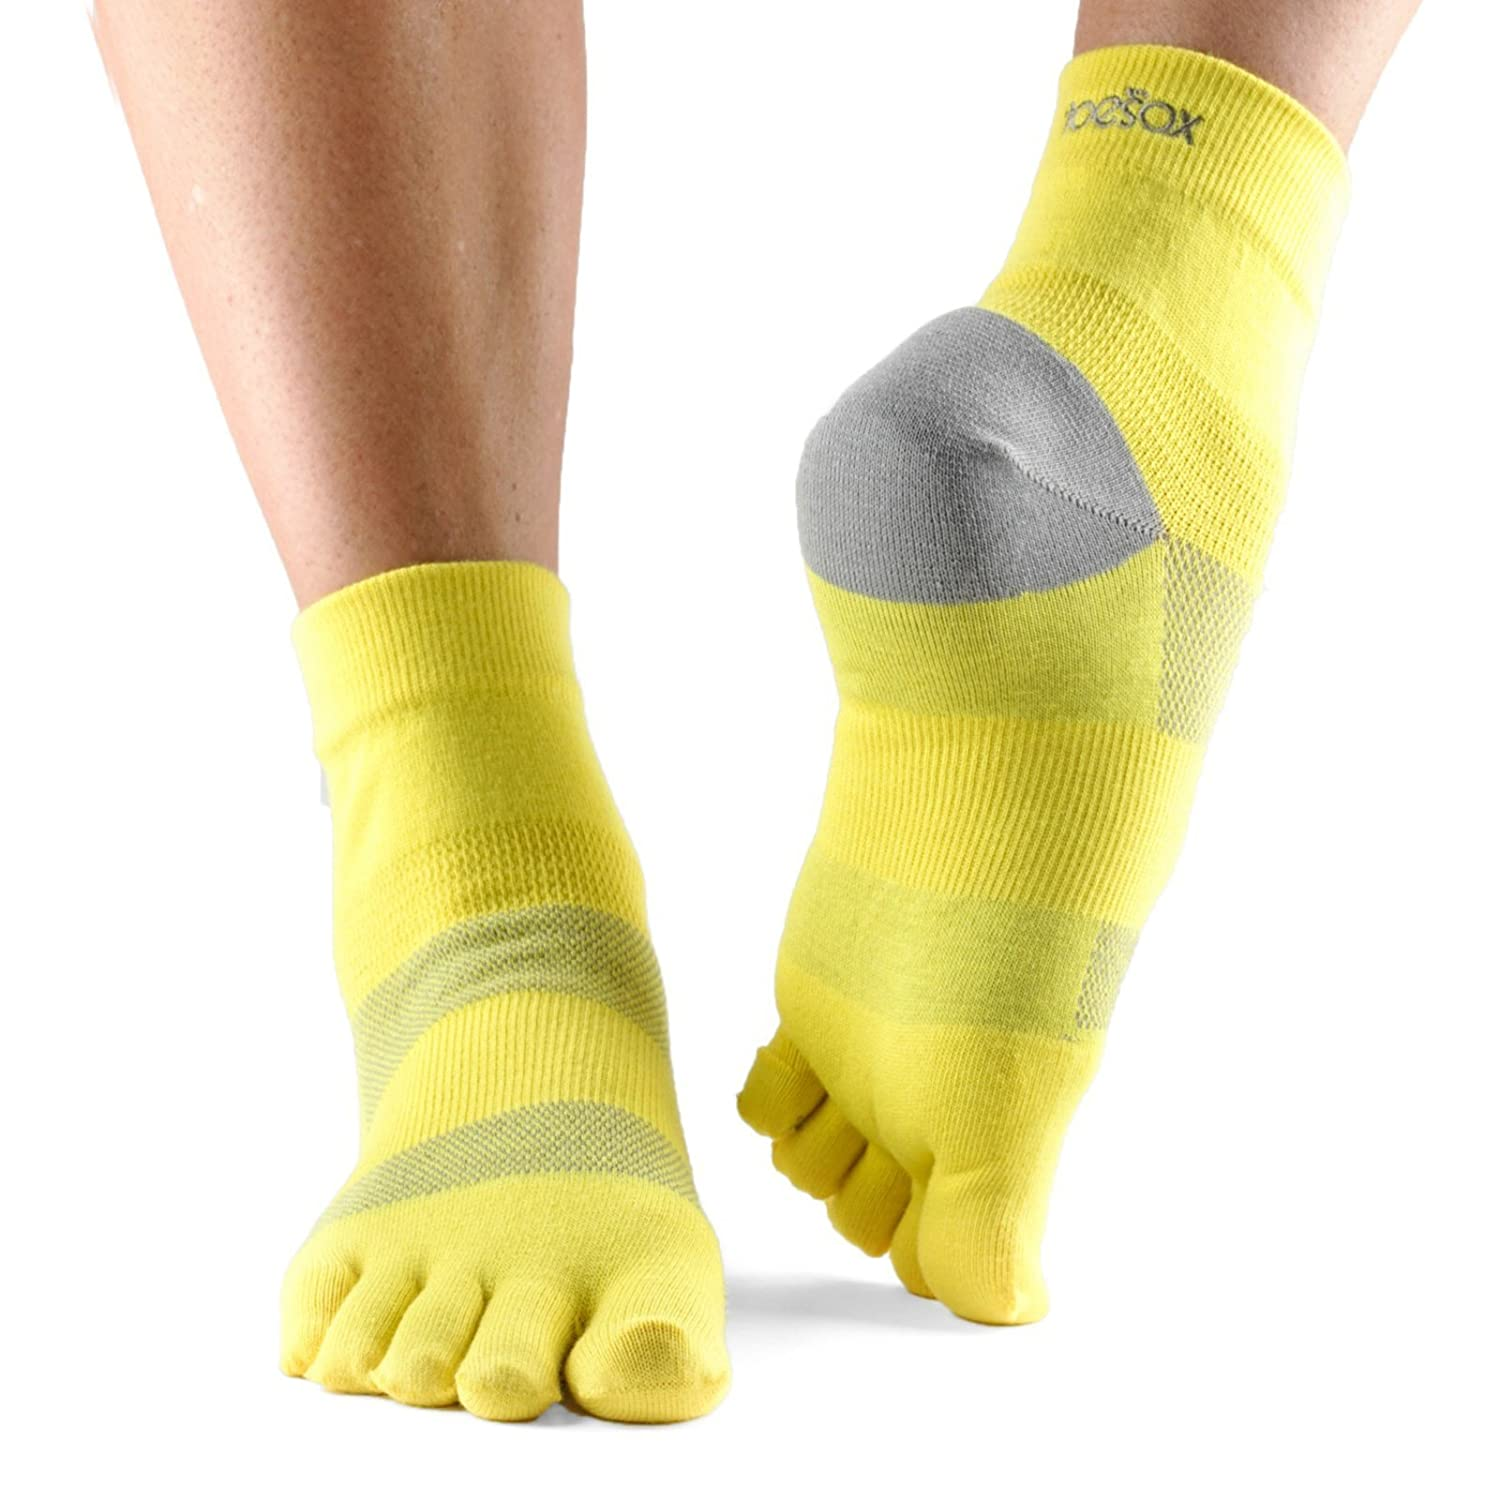 Toesox Minnie Women's Performance Five Toe Ankle Sport Toesocks for Hiking, Trails, Crossfit, Gym Work Out, and Long Distance Running